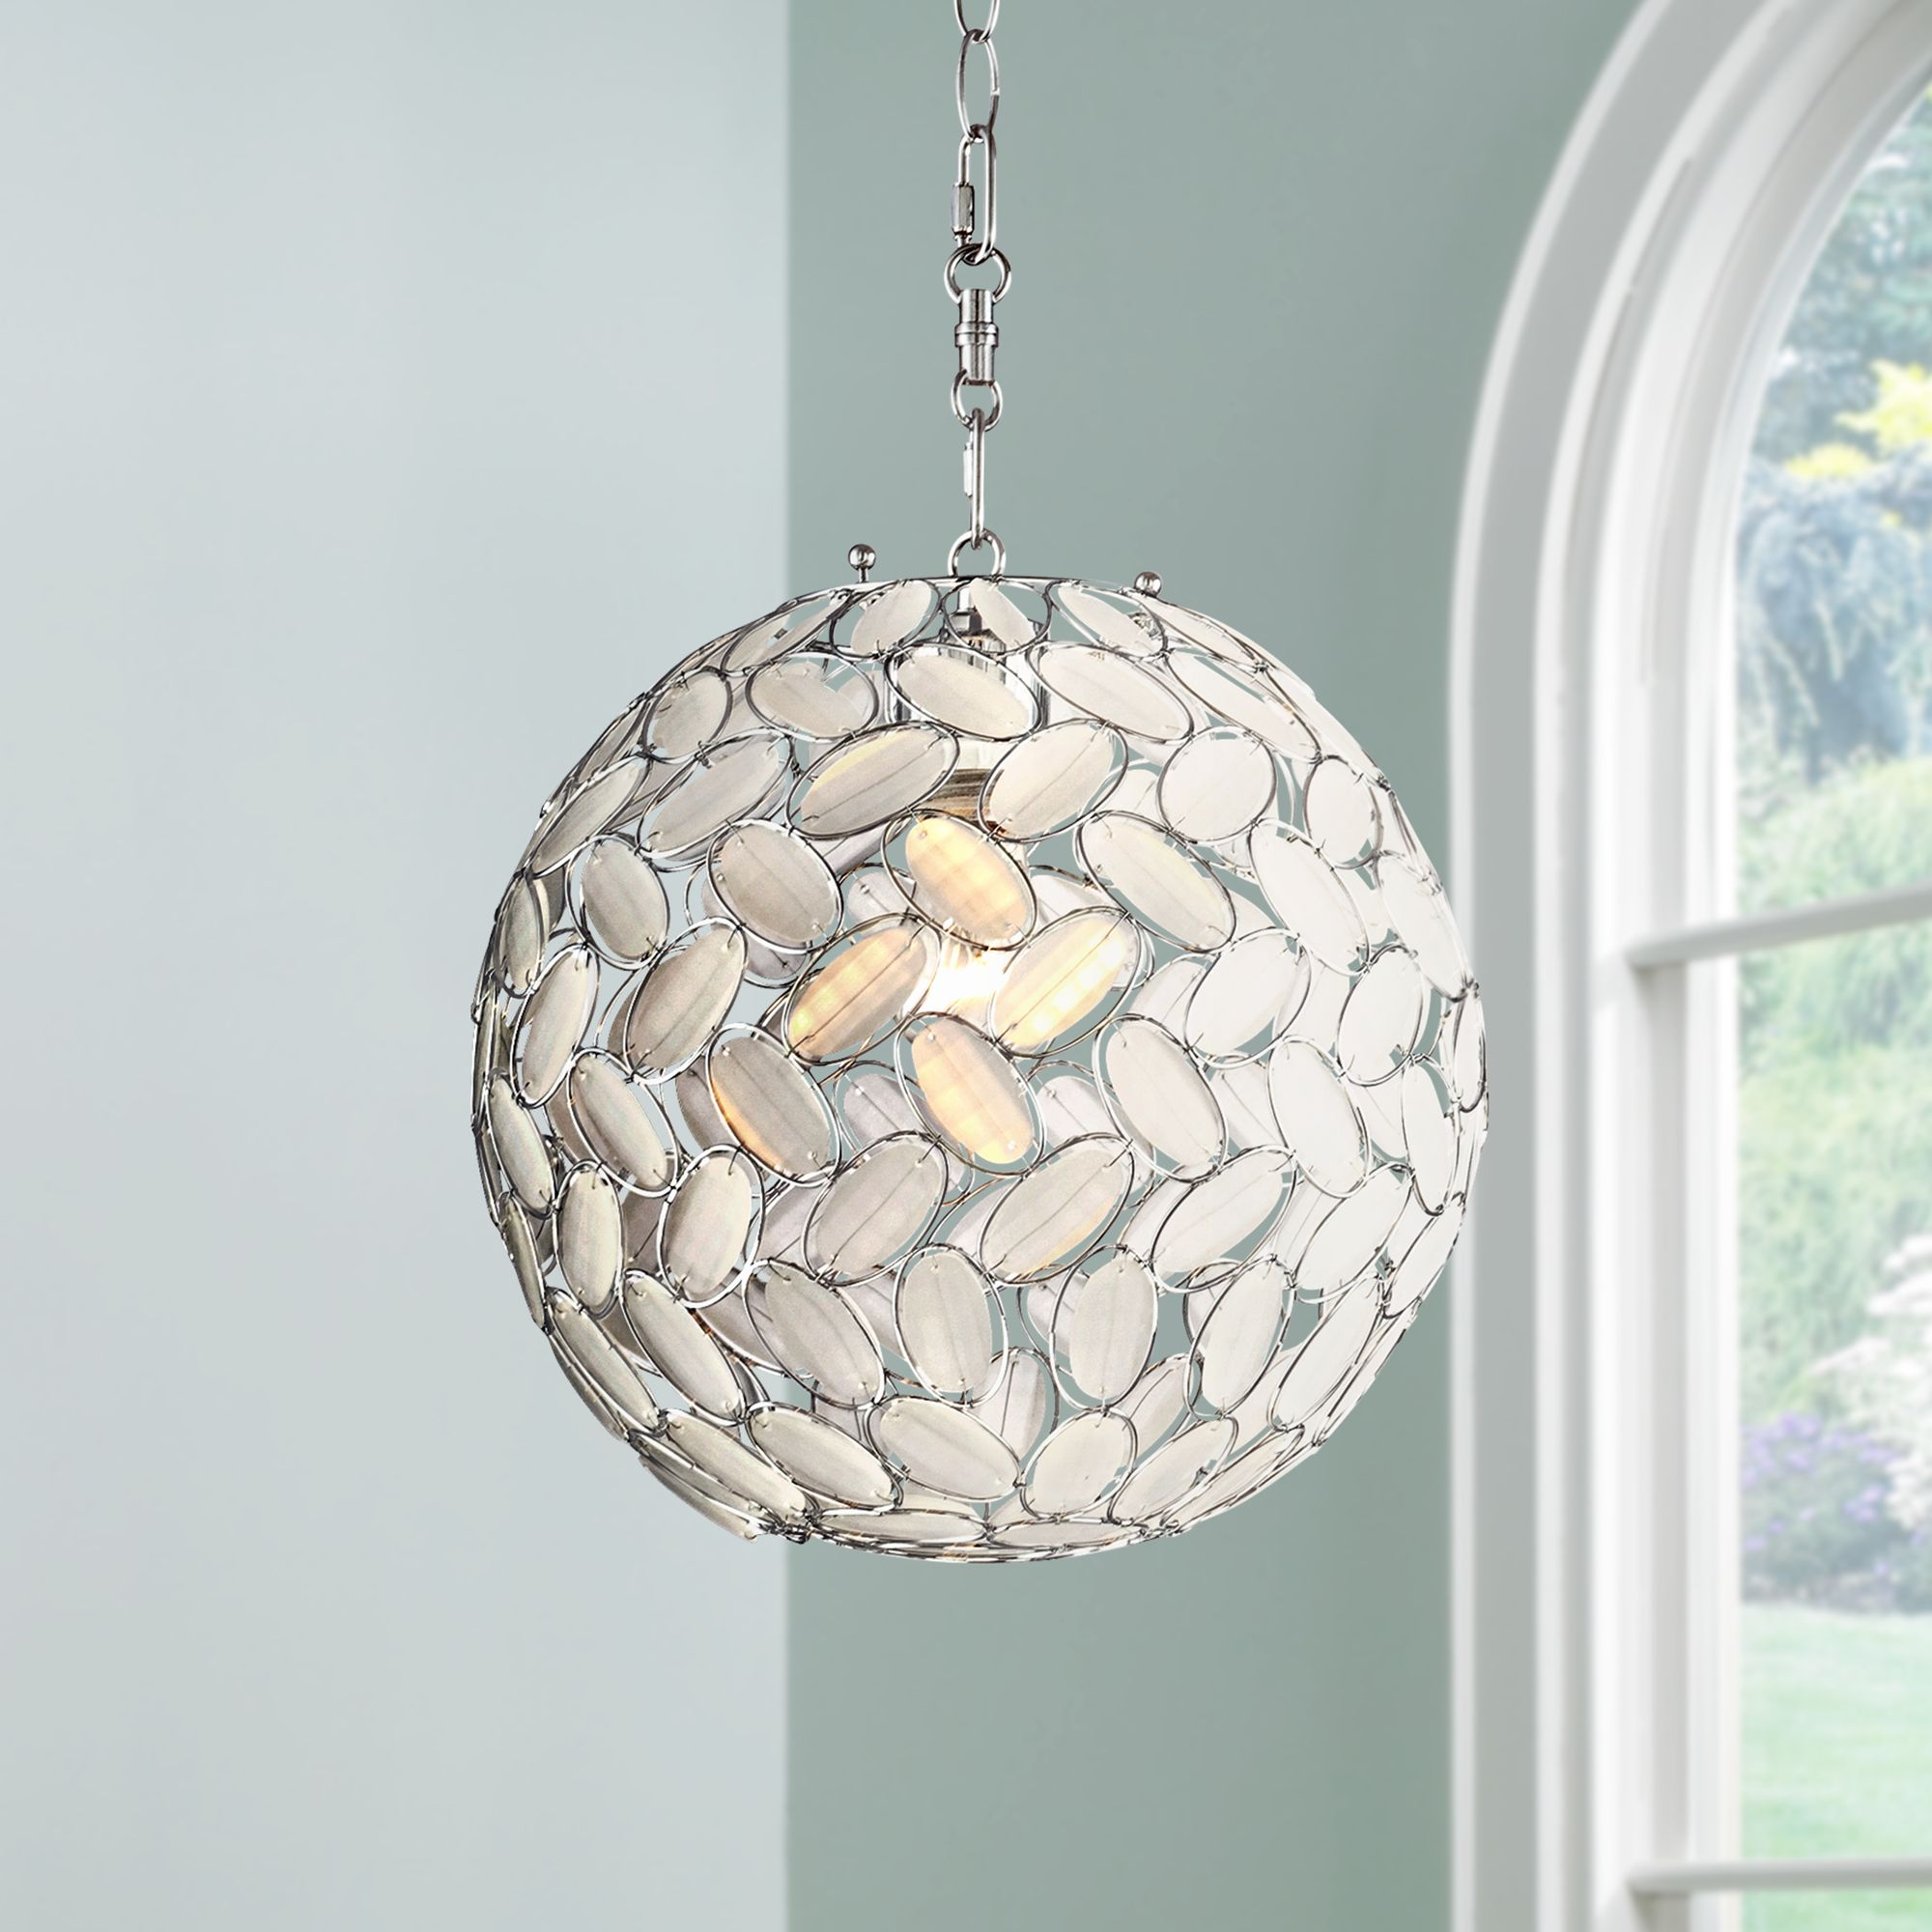 Plug-In Pendant Lights - Pendant Lighting Made Easy | Lamps Plus